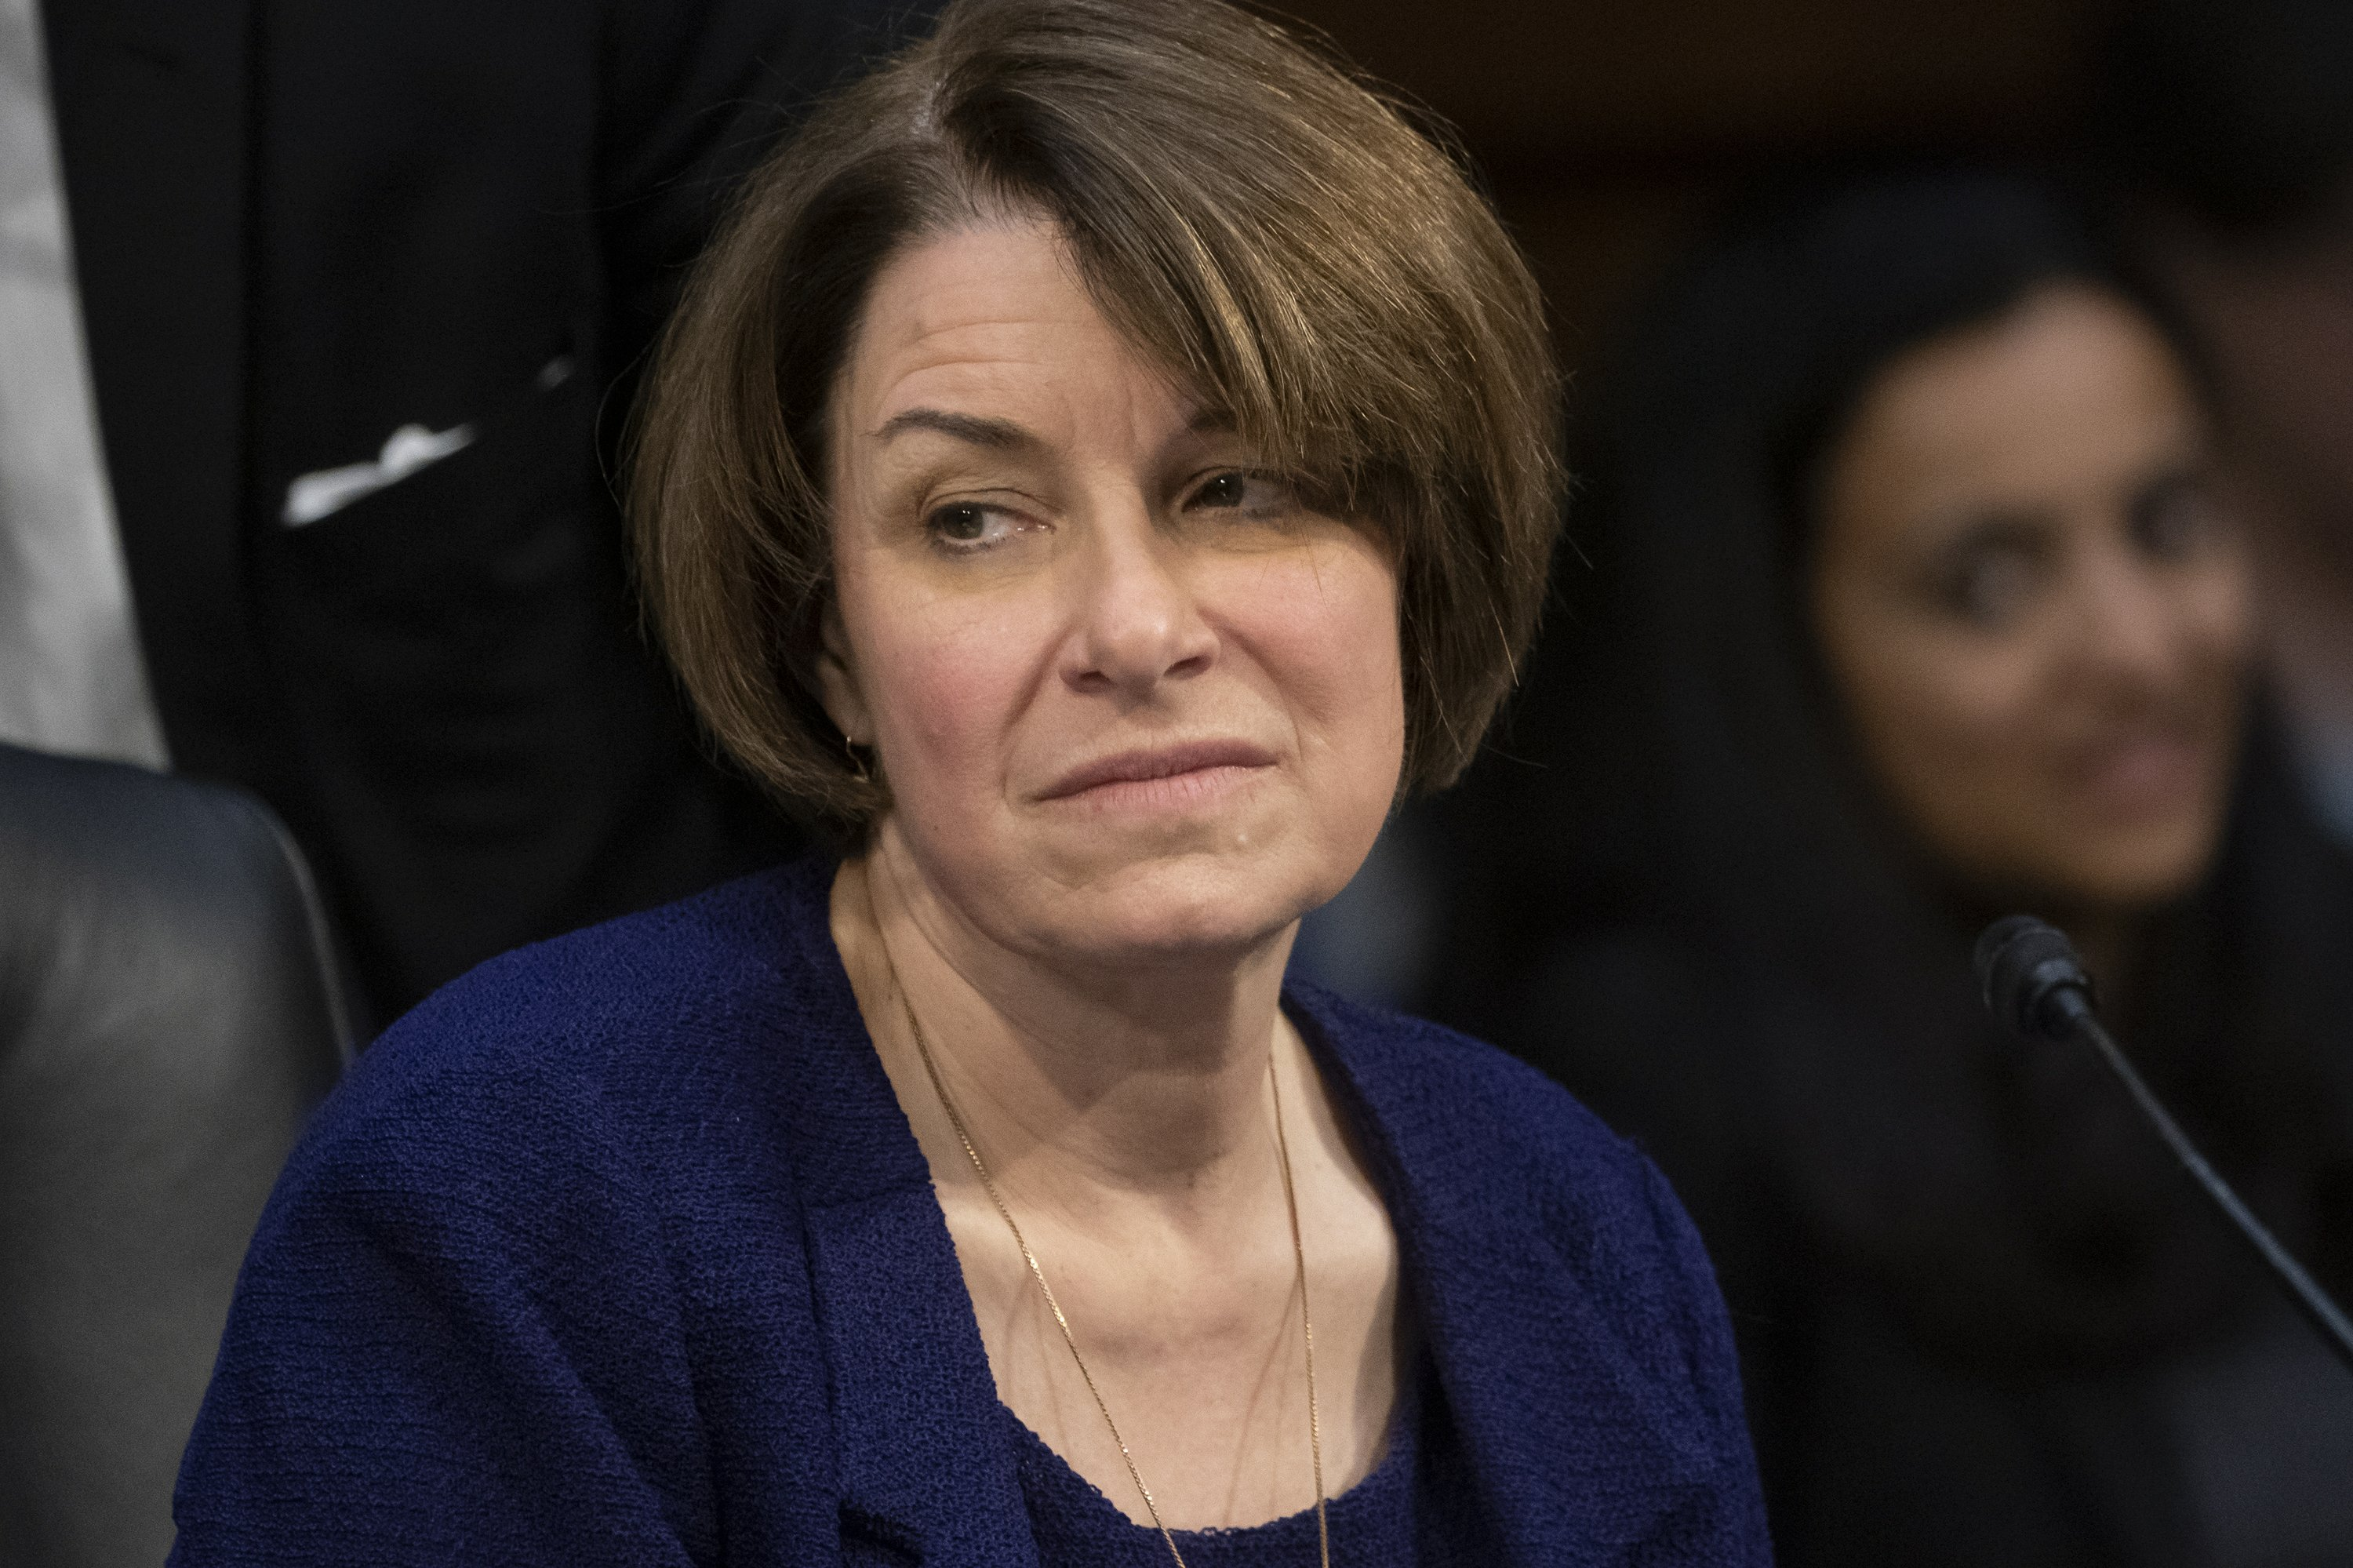 The Latest: Minn. Sen. Amy Klobuchar running for president